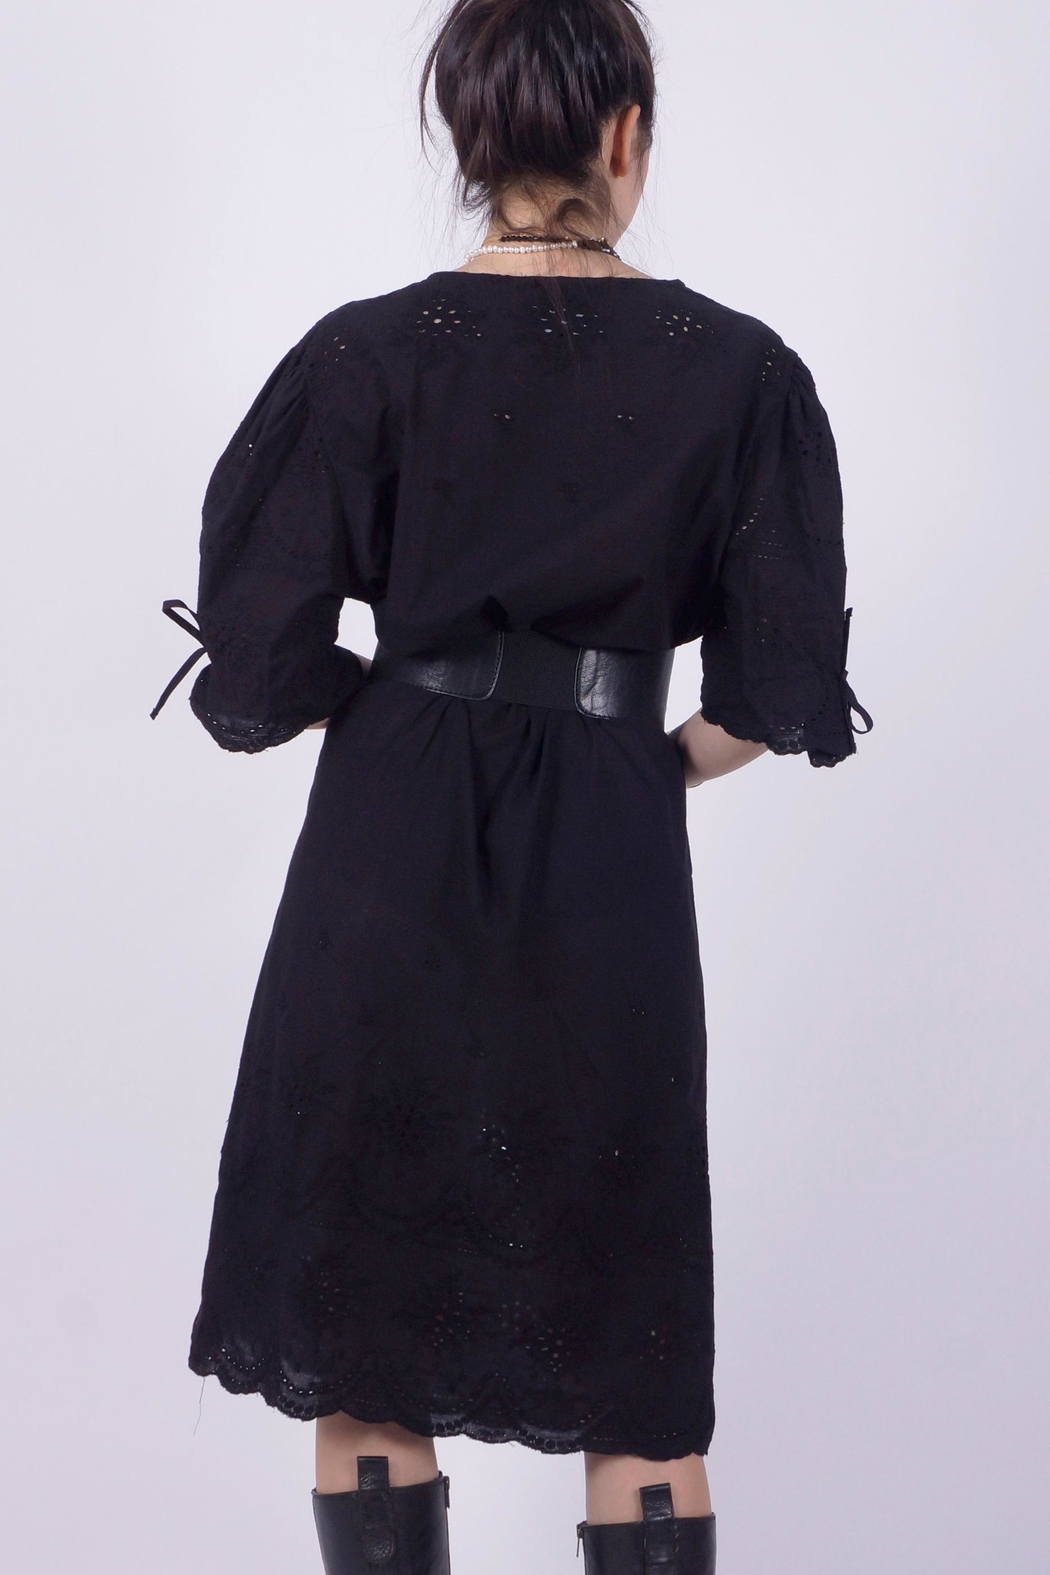 NU New York Black Eyelet Dress - Front Full Image